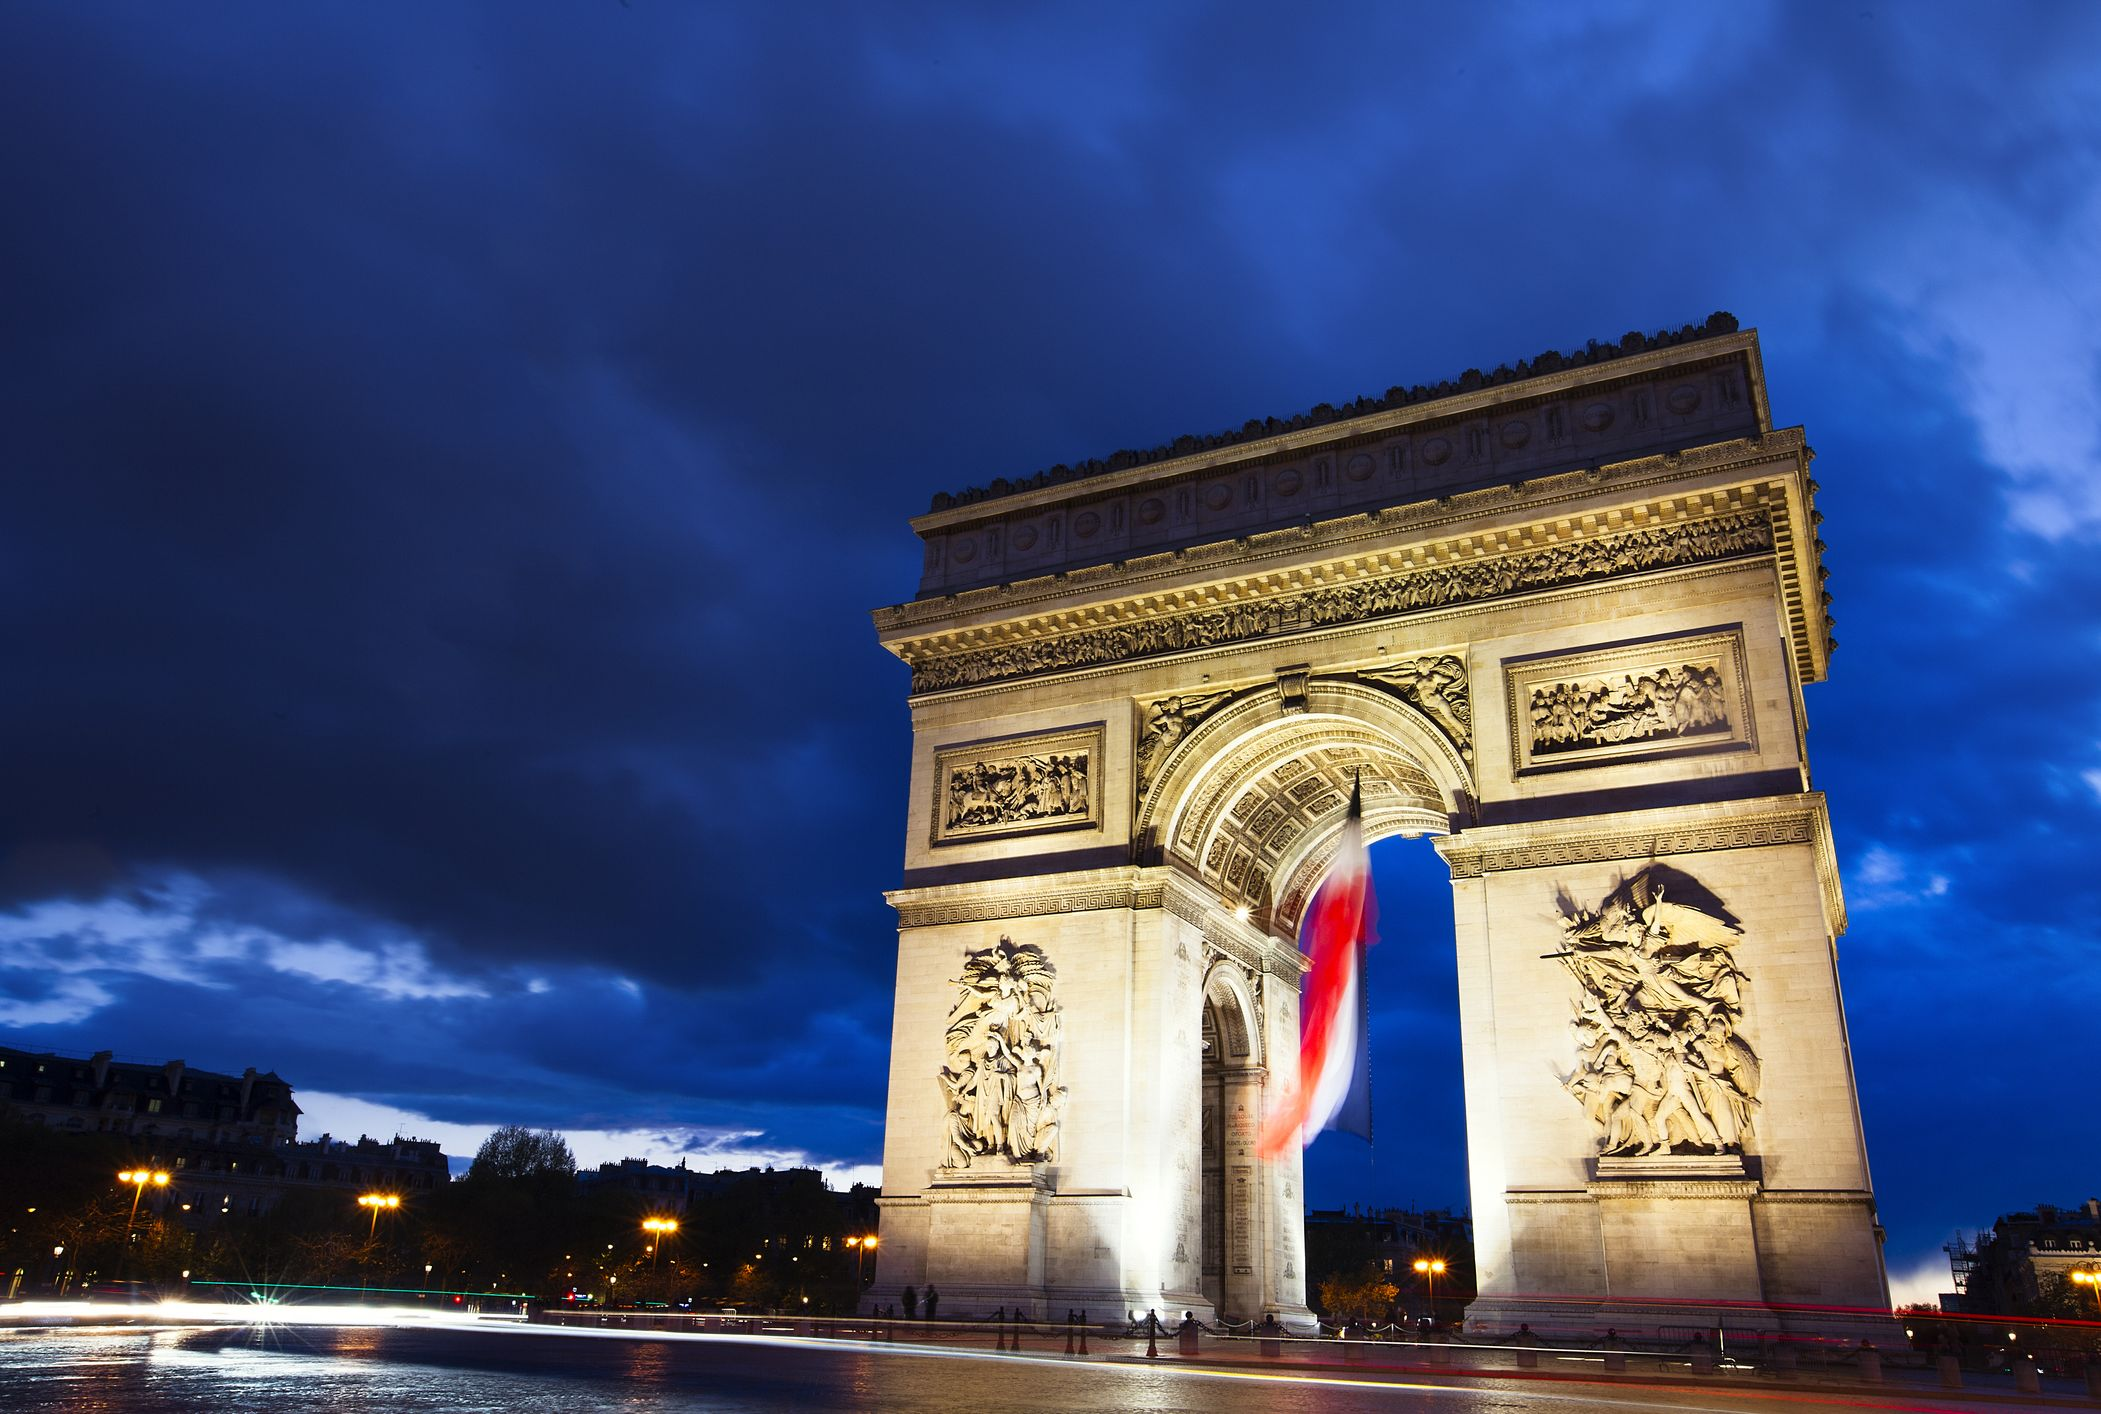 10 Fast Facts About the Arc de Triomphe | Mental Floss